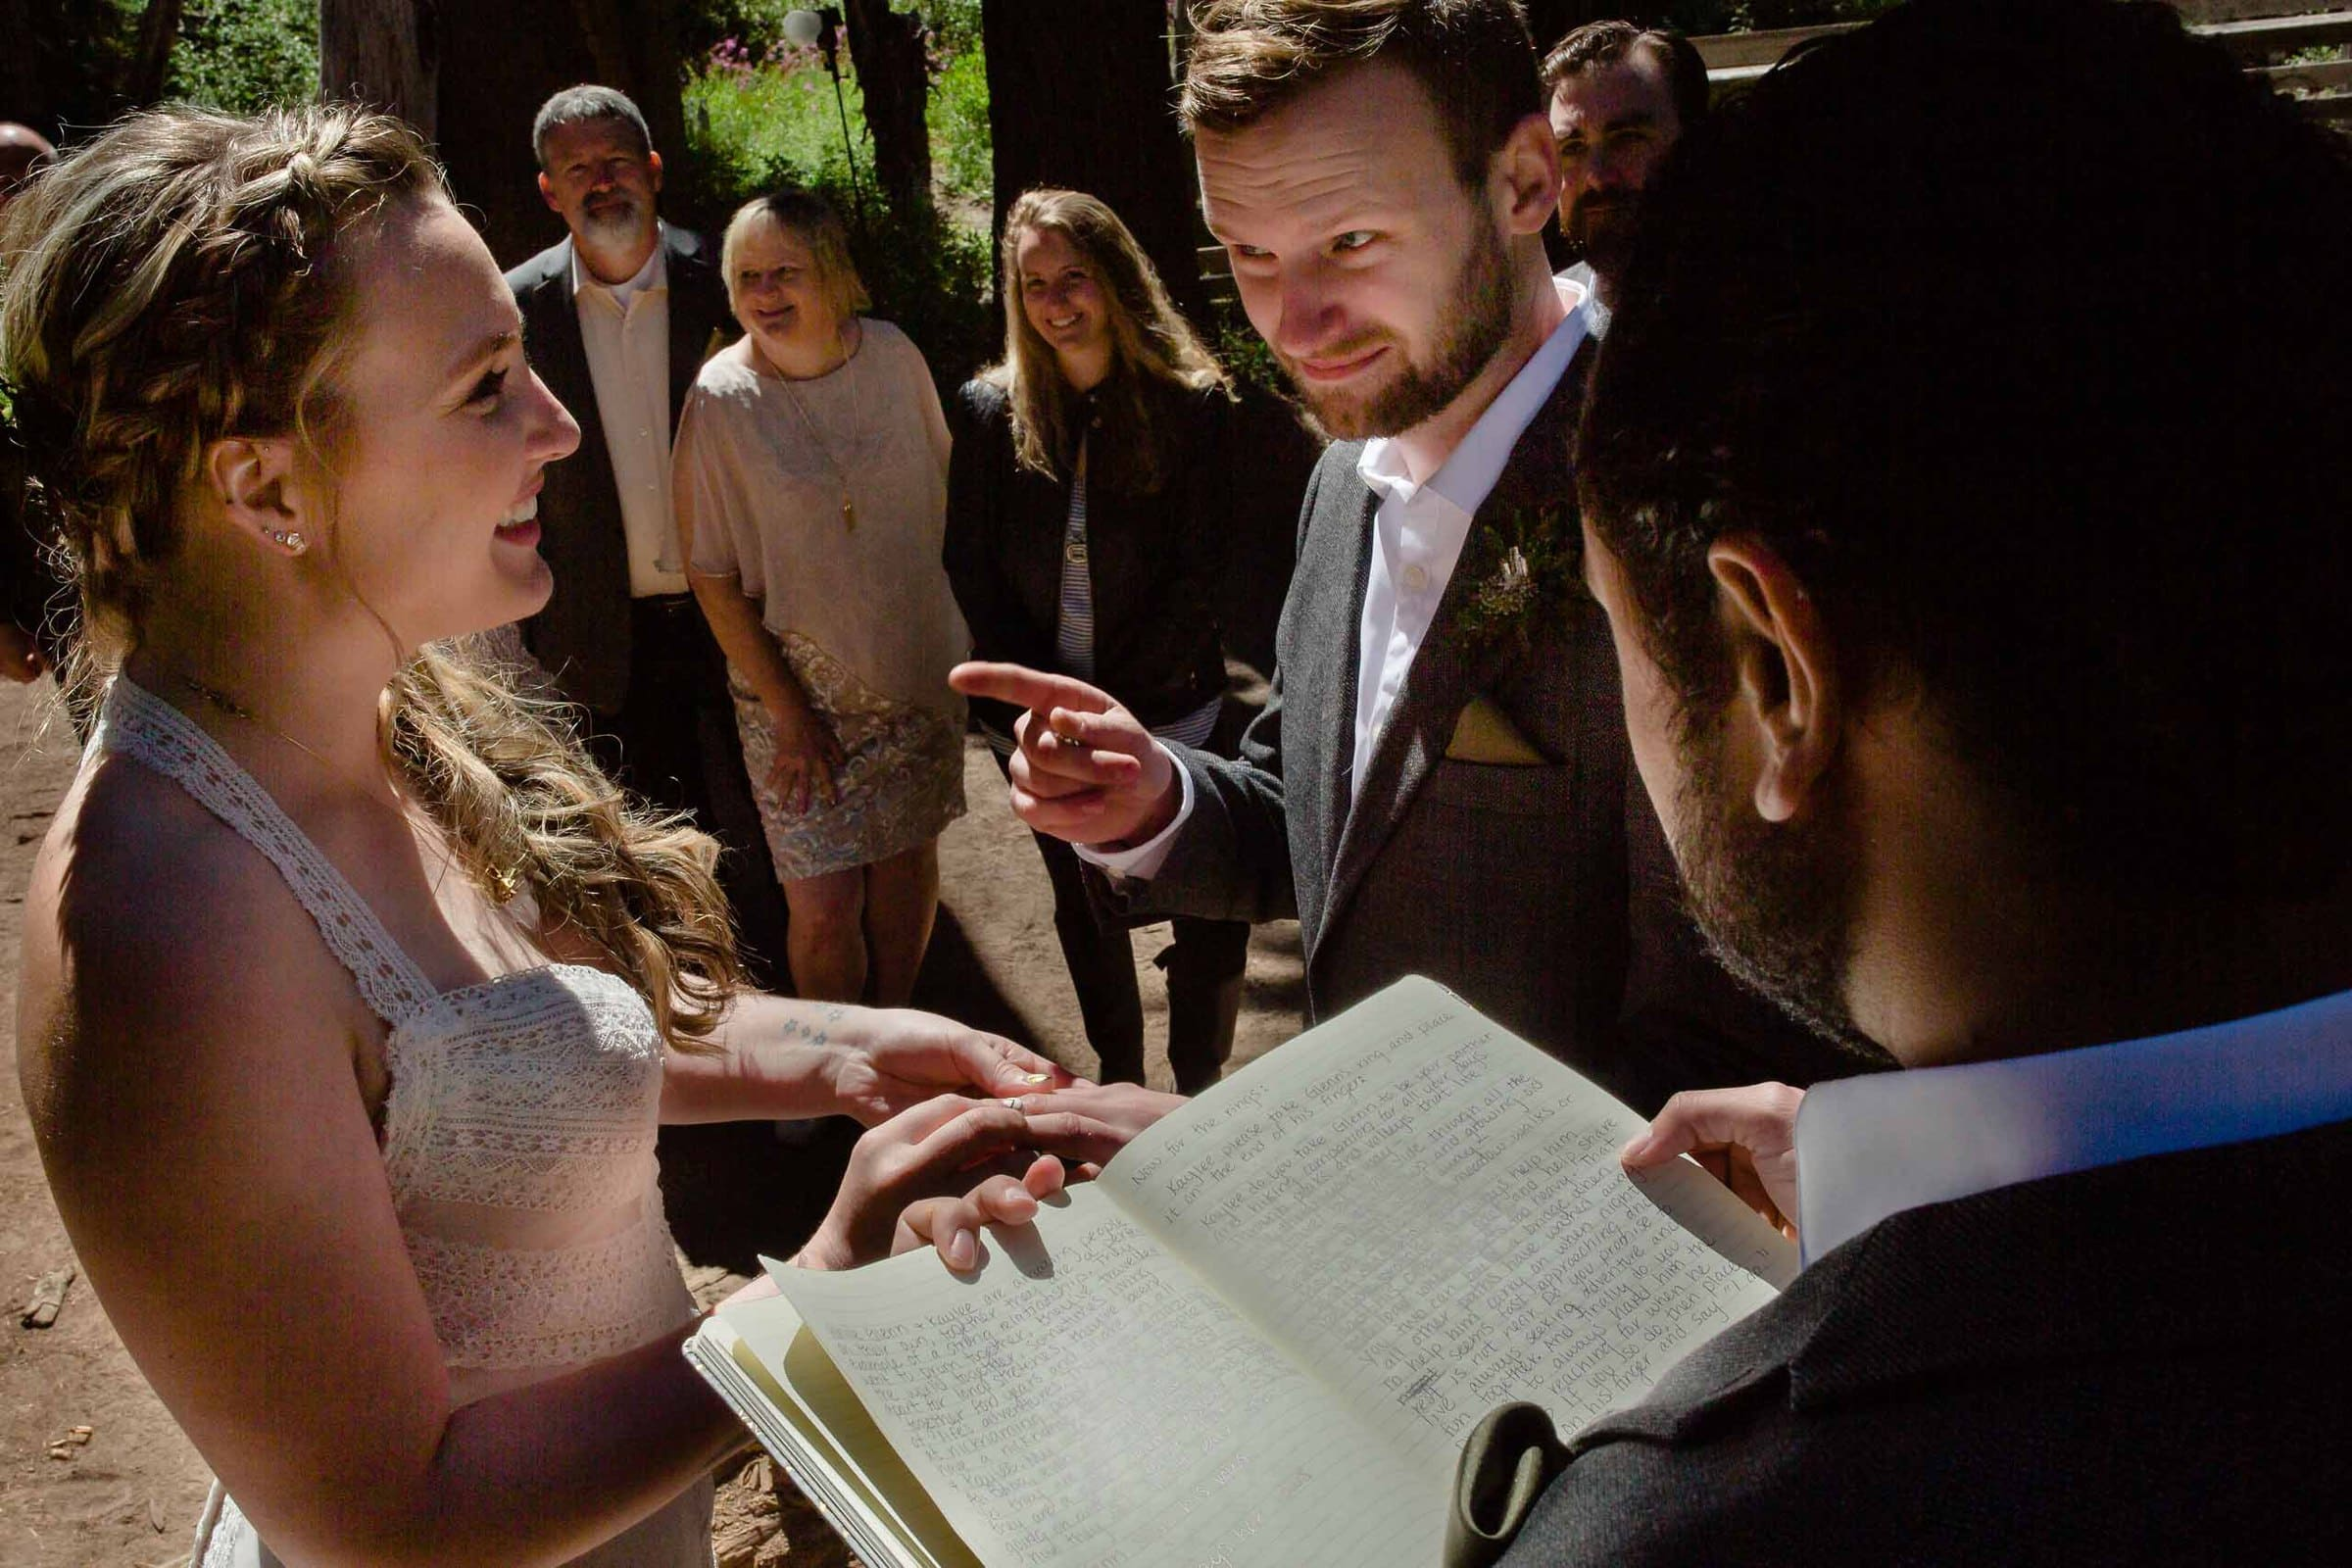 Comical photo of a groom questioning his brides vows during their Bride and groom exchanging vows during their Mt Hood Meadows wedding at Umbrella Falls